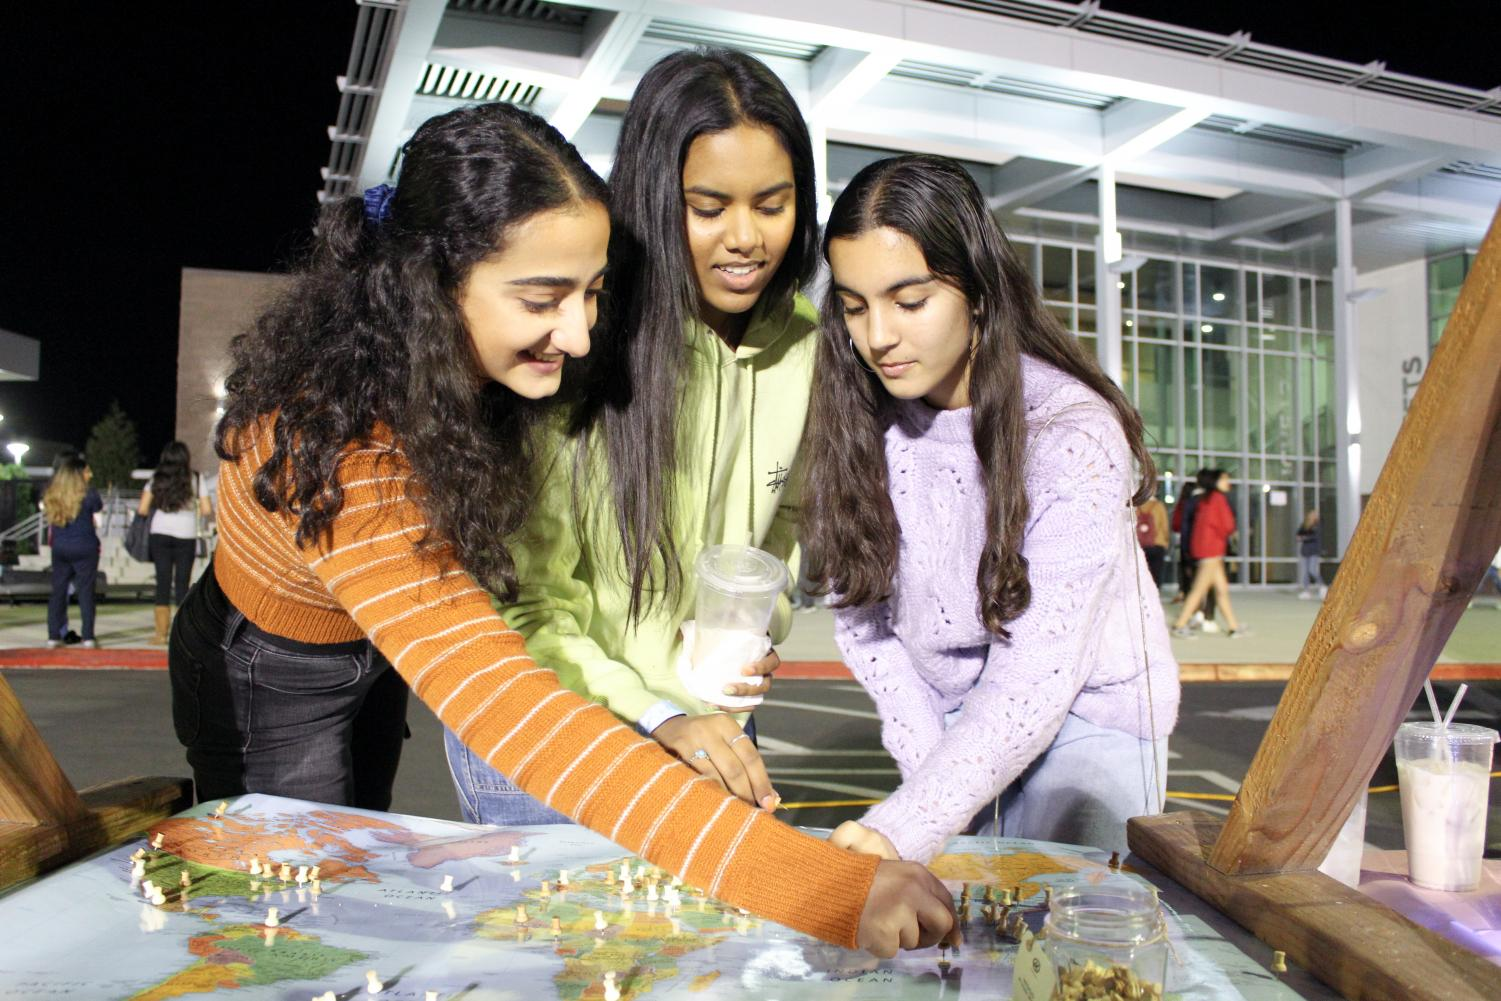 ORIGINS: Seniors Saghar Rafie, Akshita Agirishetti and Nelly Safi plot a point on the map to represent the place they are from.